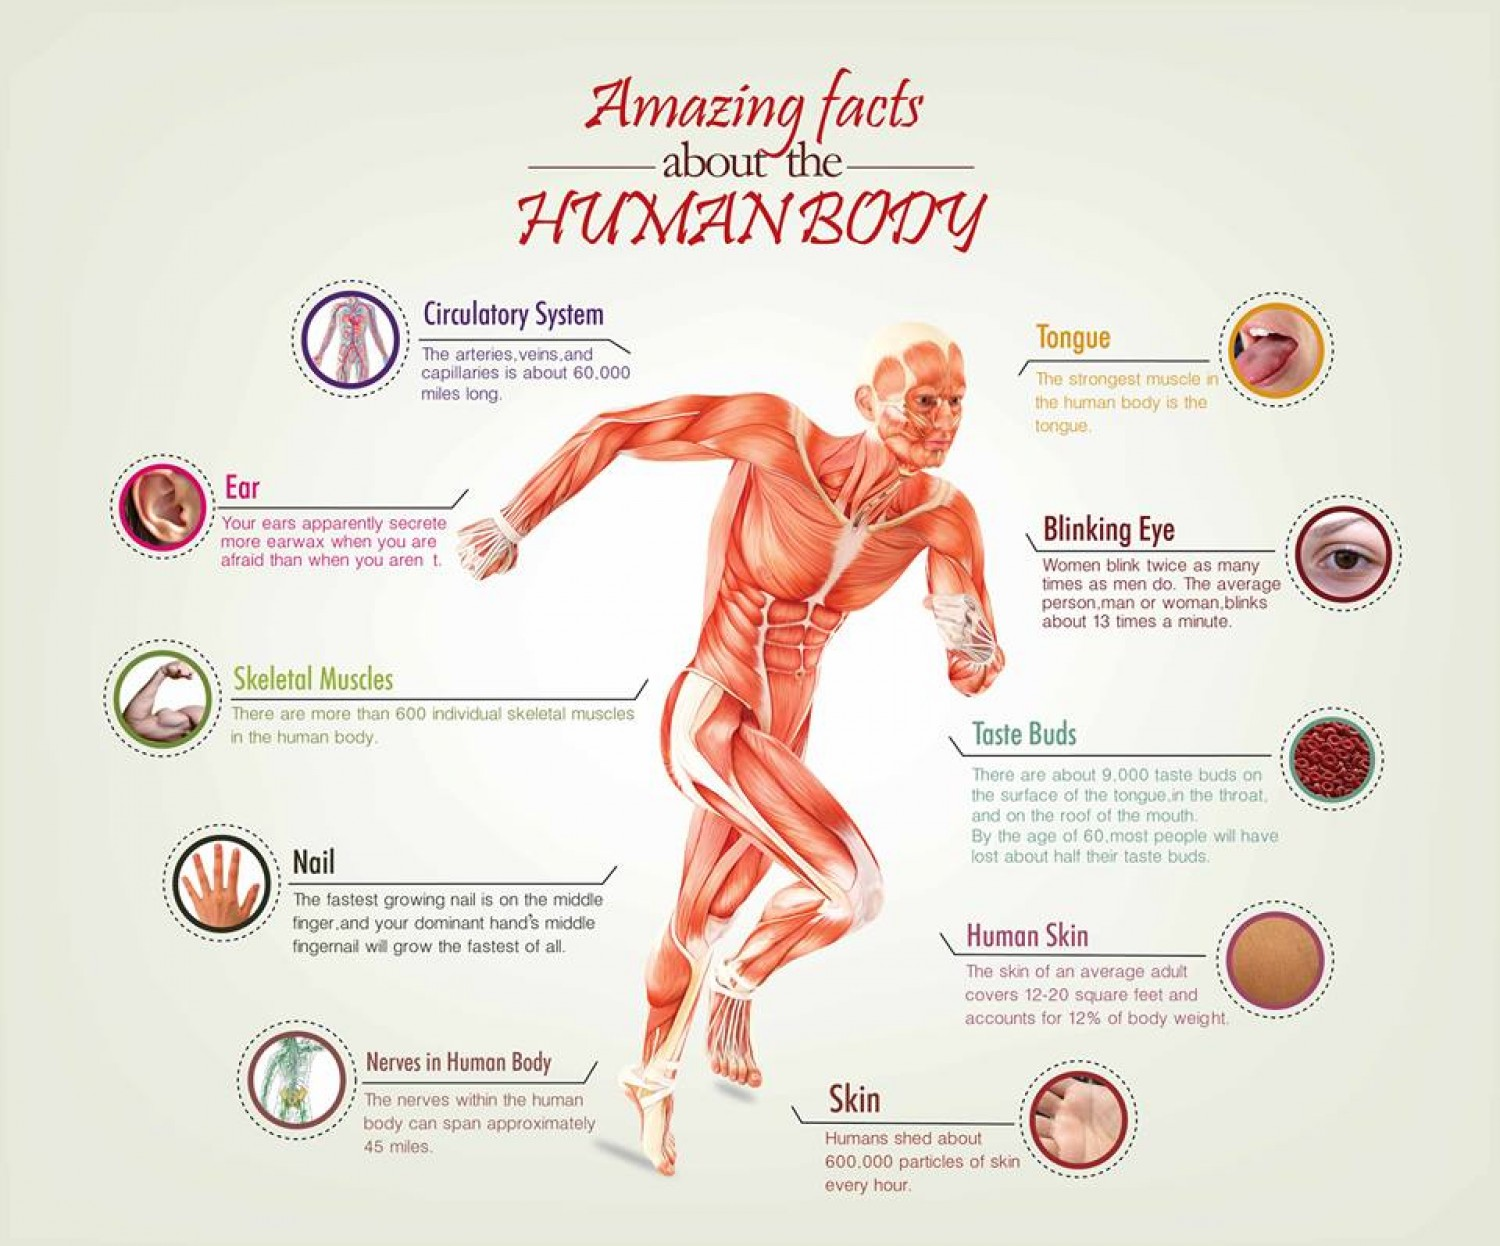 interesting fact about human body., Muscles